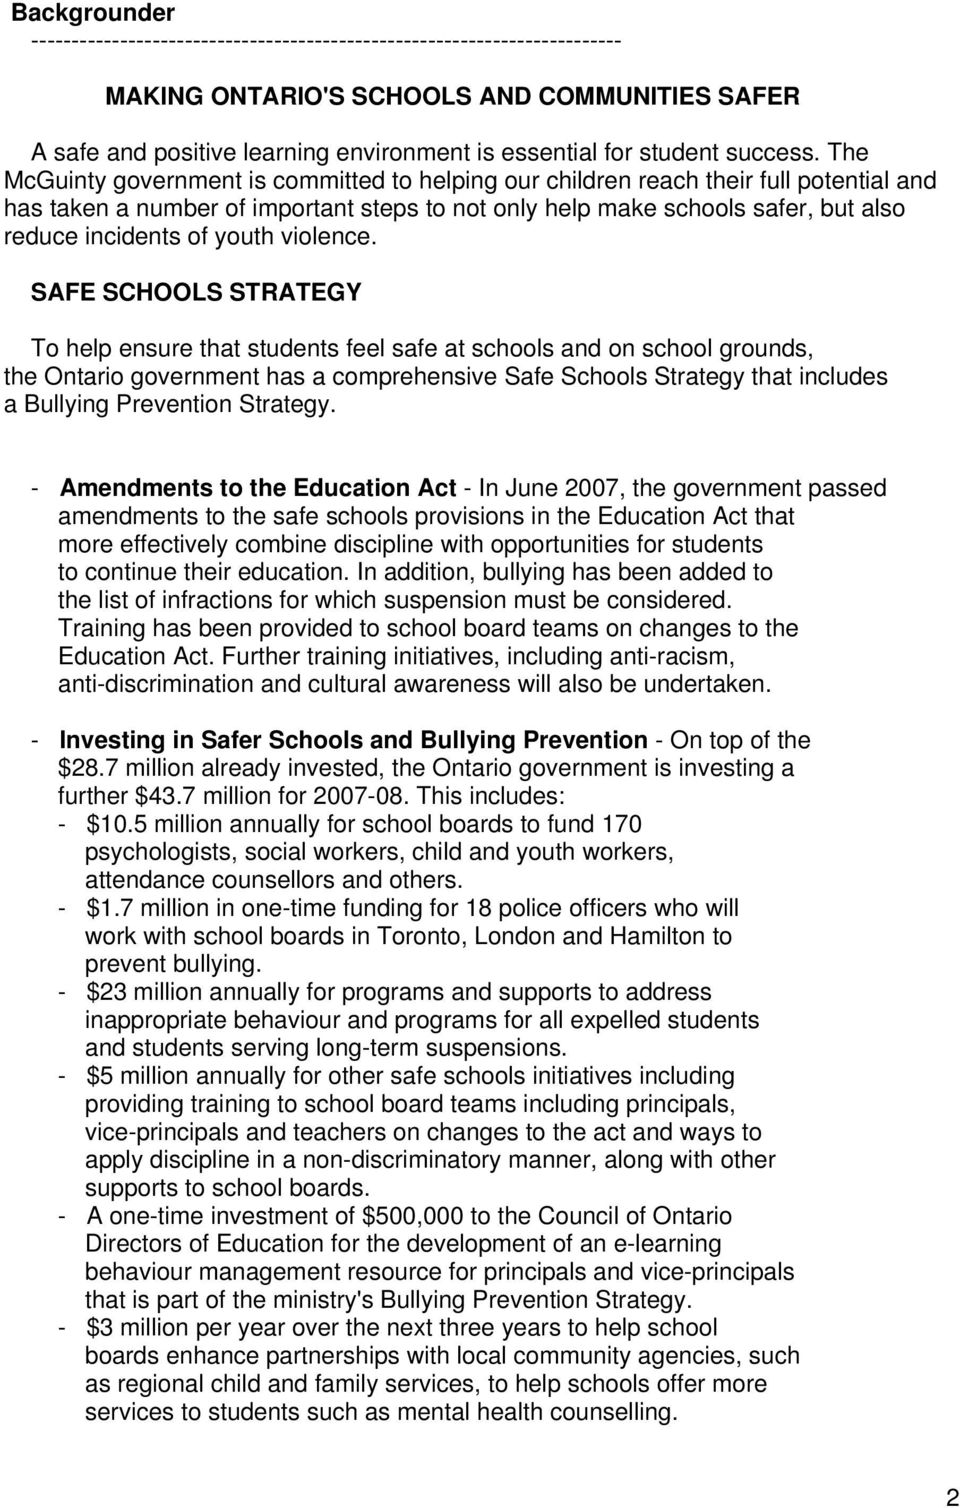 The McGuinty government is committed to helping our children reach their full potential and has taken a number of important steps to not only help make schools safer, but also reduce incidents of